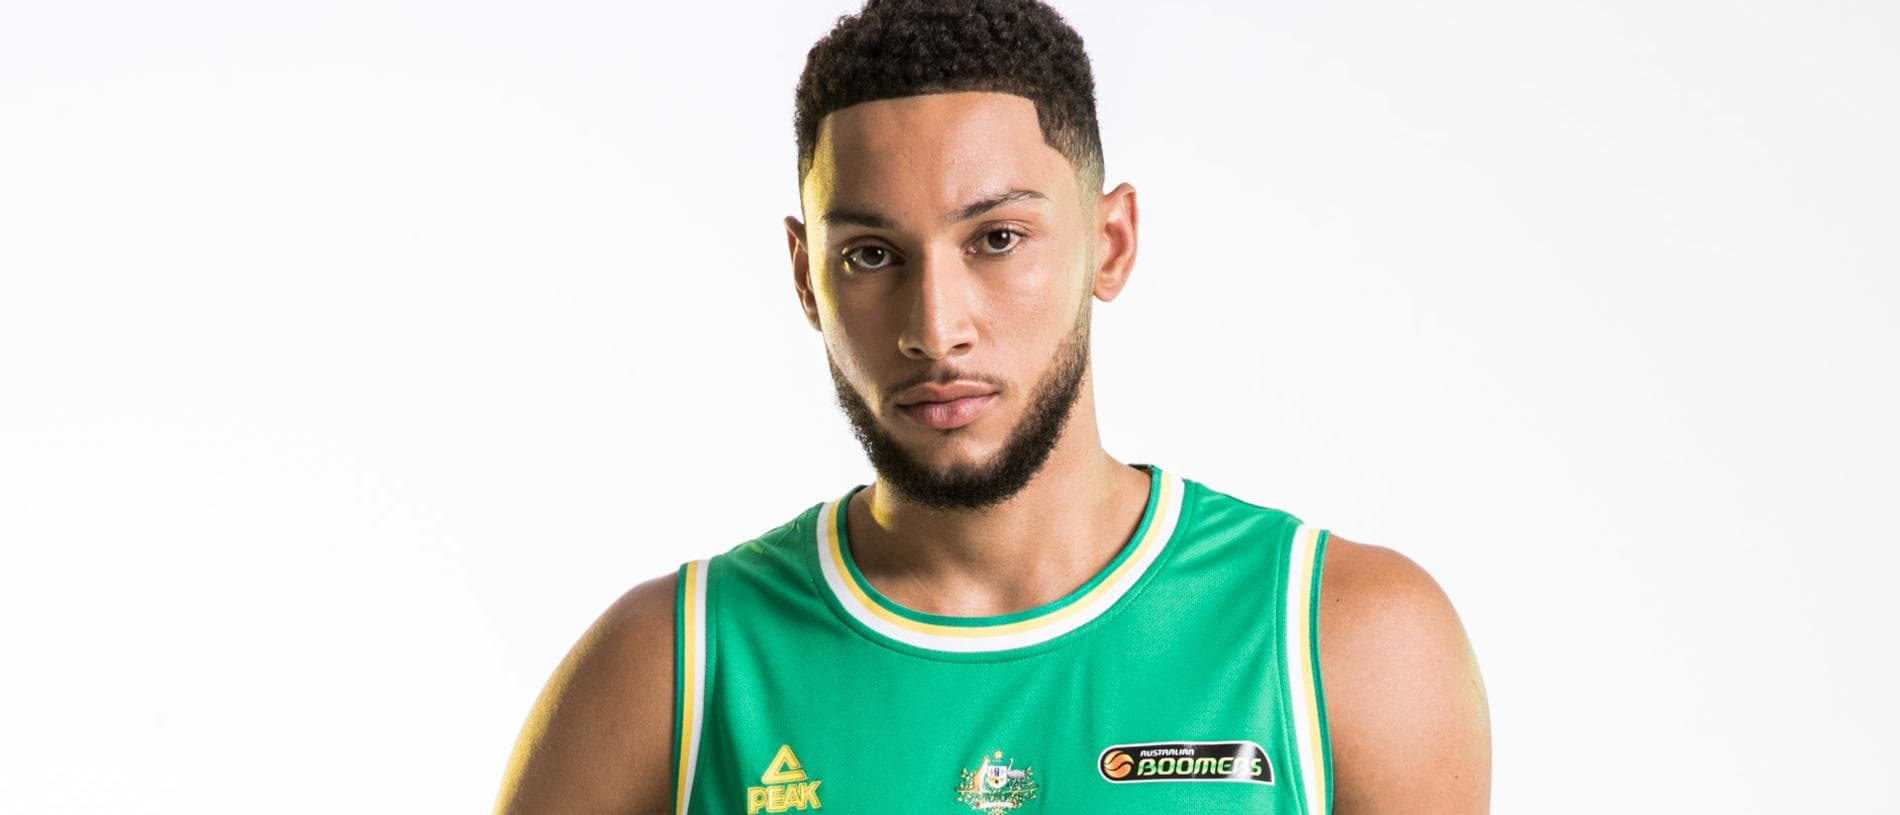 MUST NOT RUN BEFORE JULY 24, 2019 MUST REMOVE 'PEAK' LOGO FROM TOP CONTACT MATTHEW KITCHIN 03 9292 1367 Australian Ben Simmons in the Boomers strip.